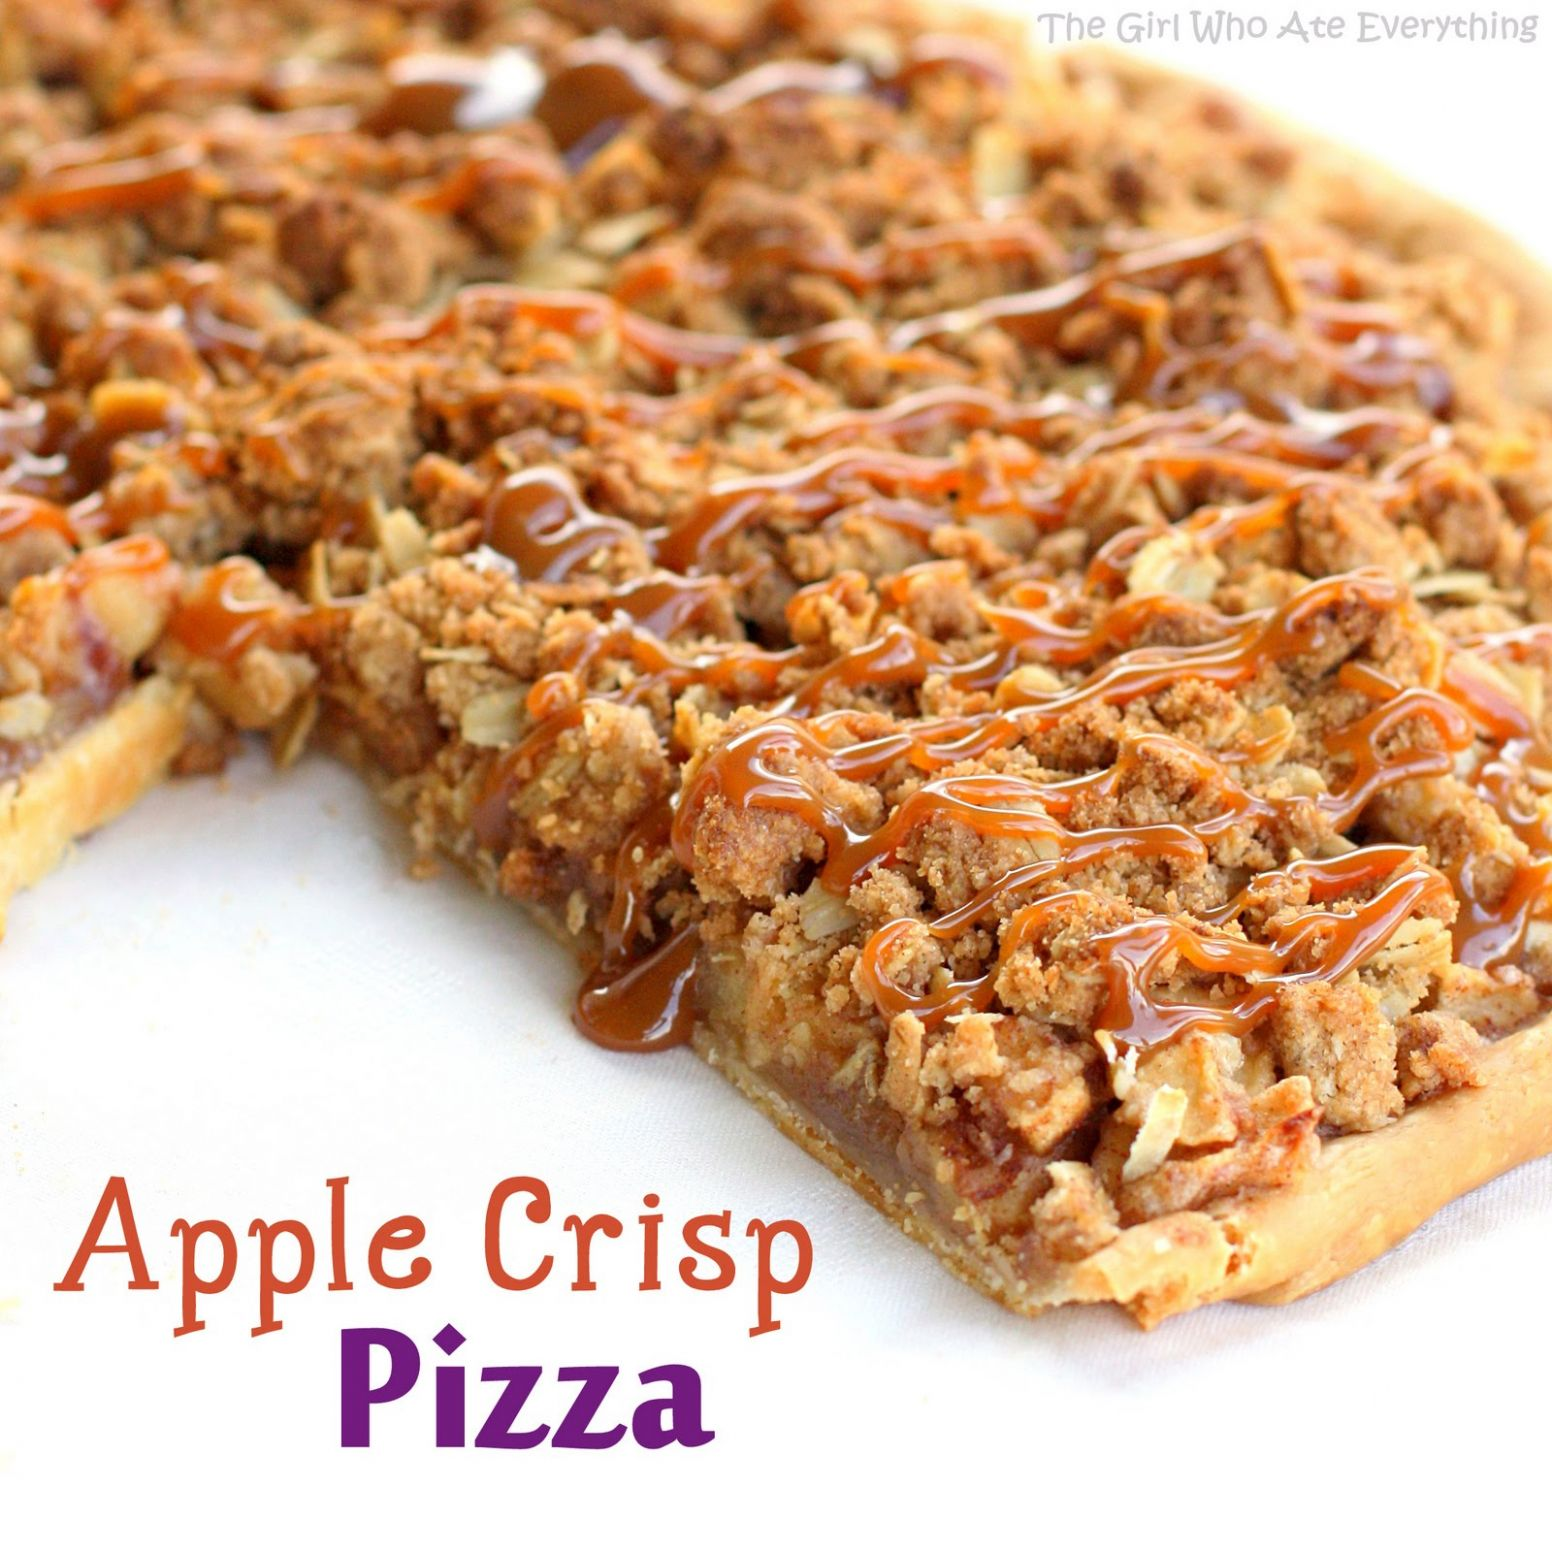 Apple Crisp Pizza - Easy Recipes With Apples